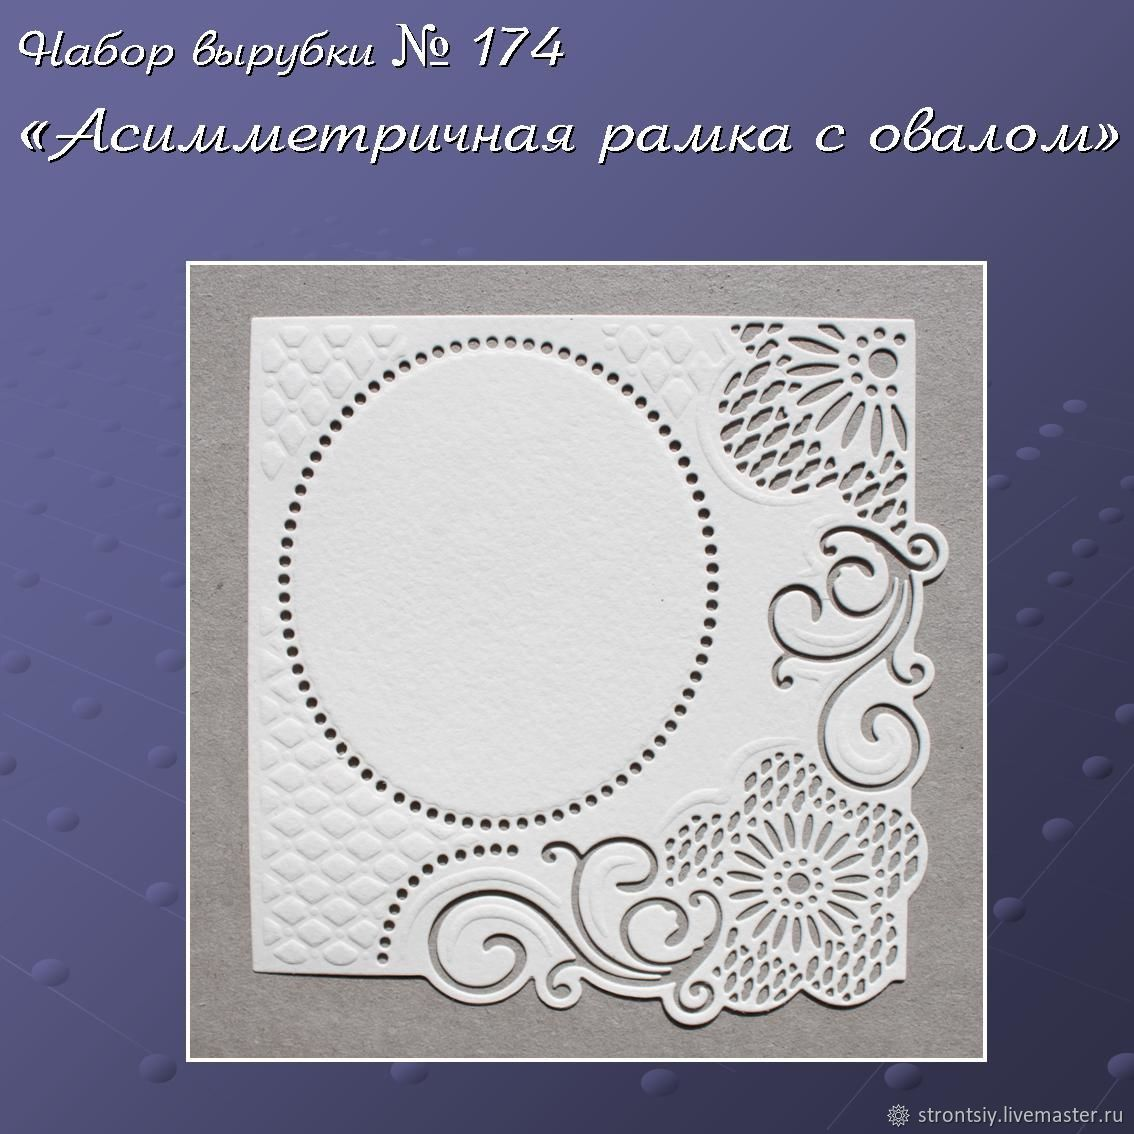 Set logging No. 174 `Asymmetric frame with oval` embossed In a set of 1 element